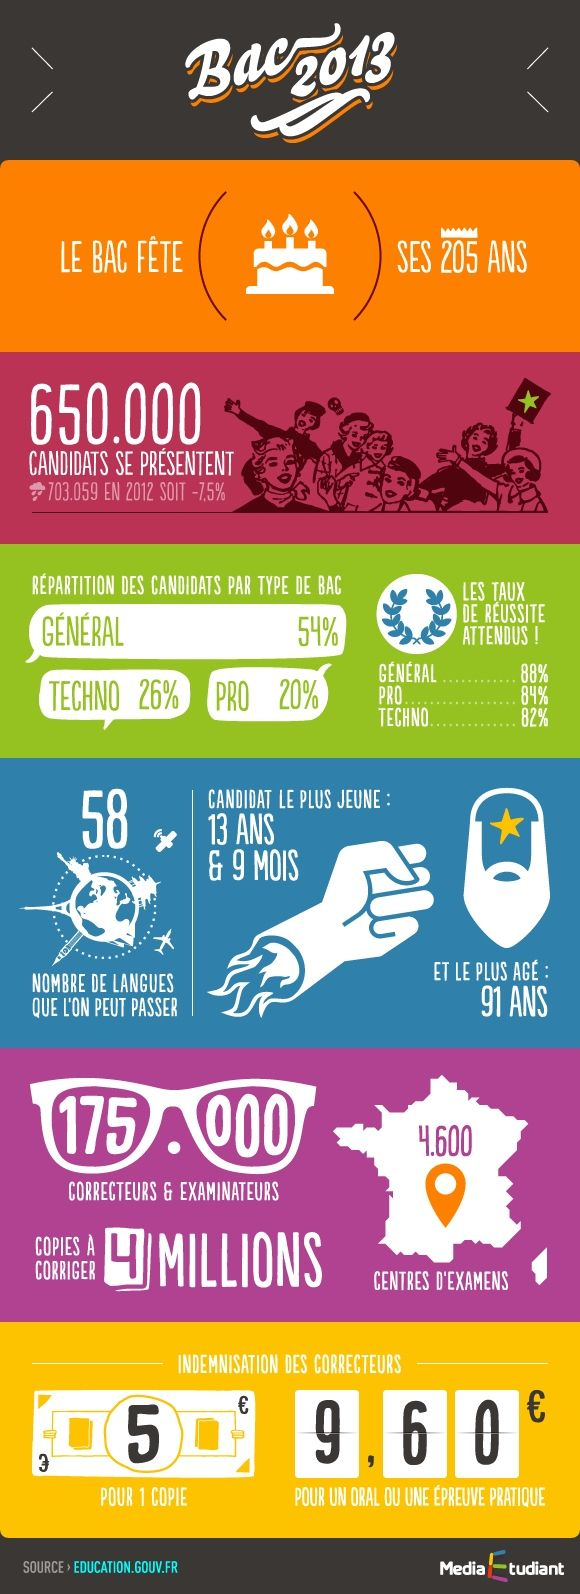 This image for upper level students provides information about the exam all French high school students must take to get into college. #école #France